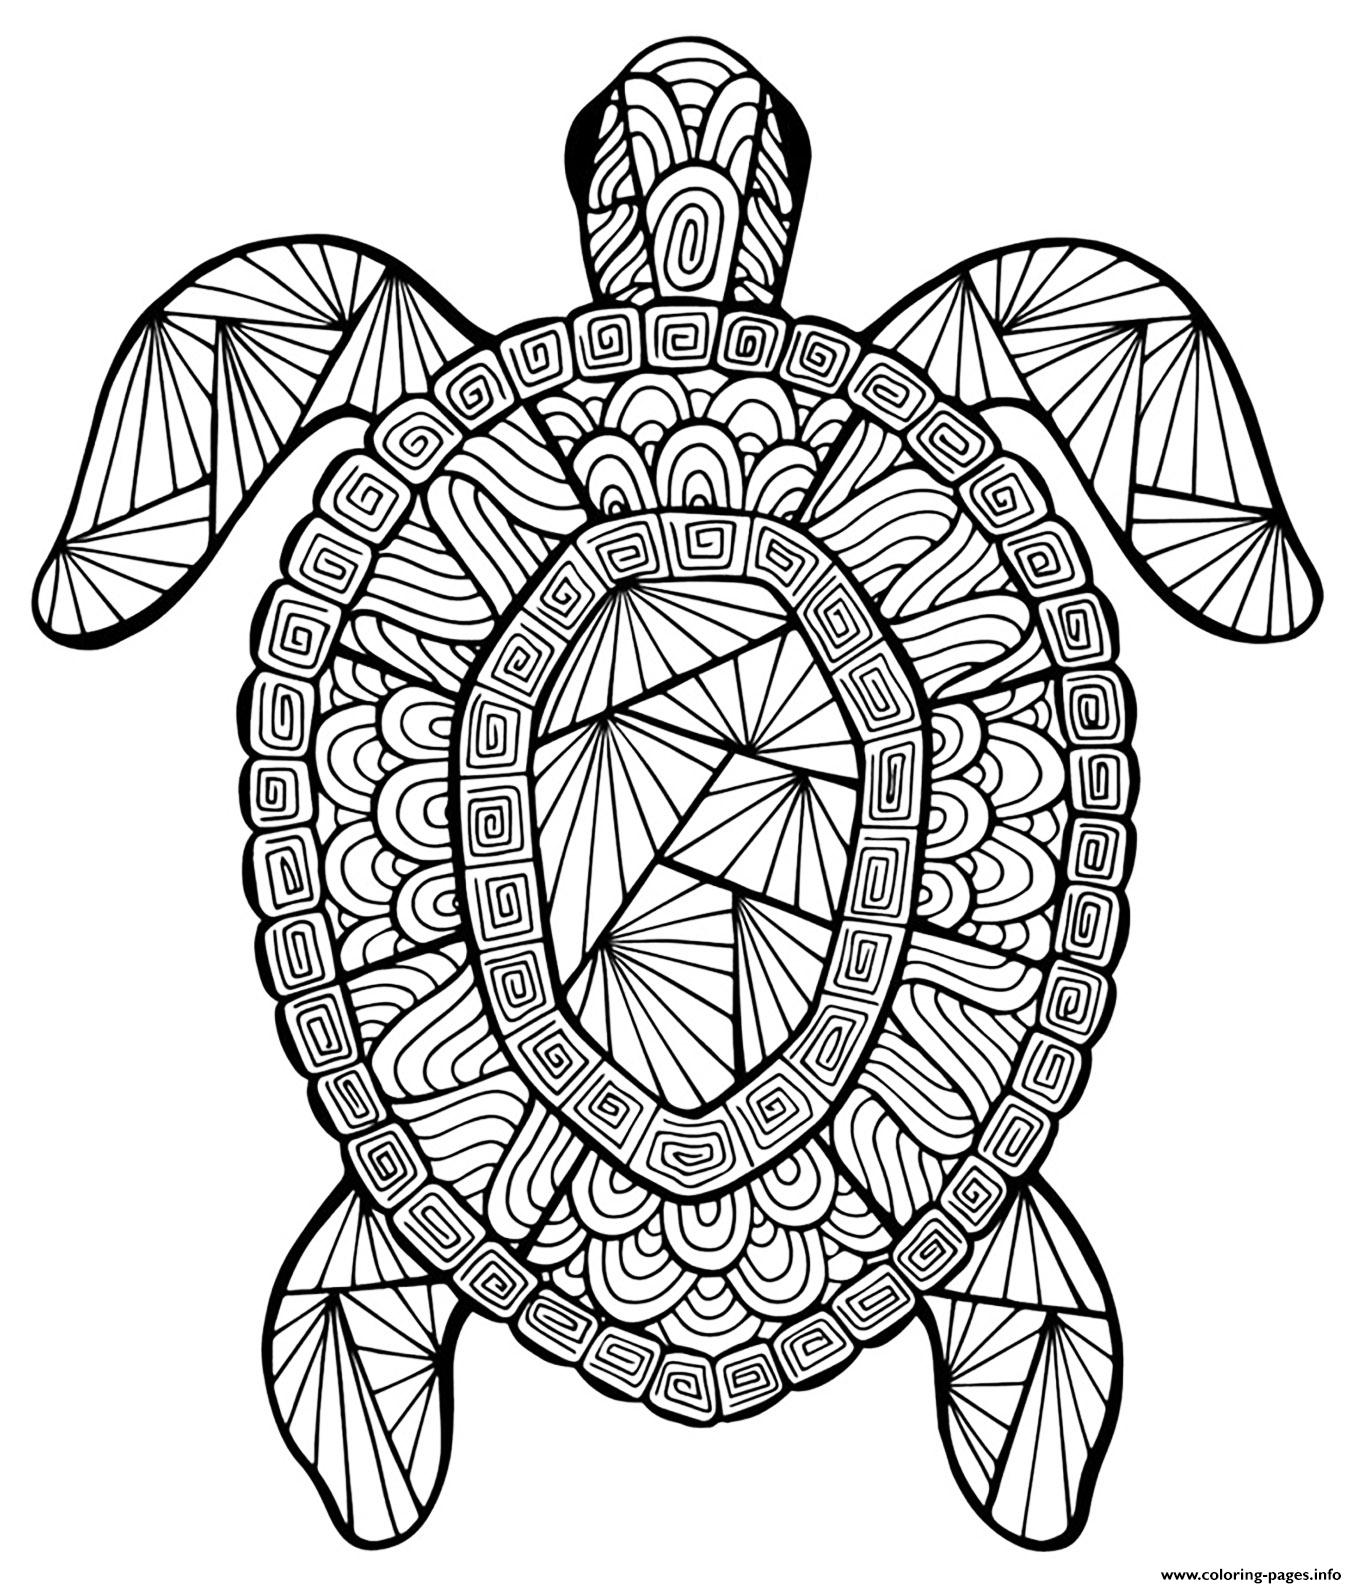 Advanced Animal Incredible Turtle Coloring Pages Printable